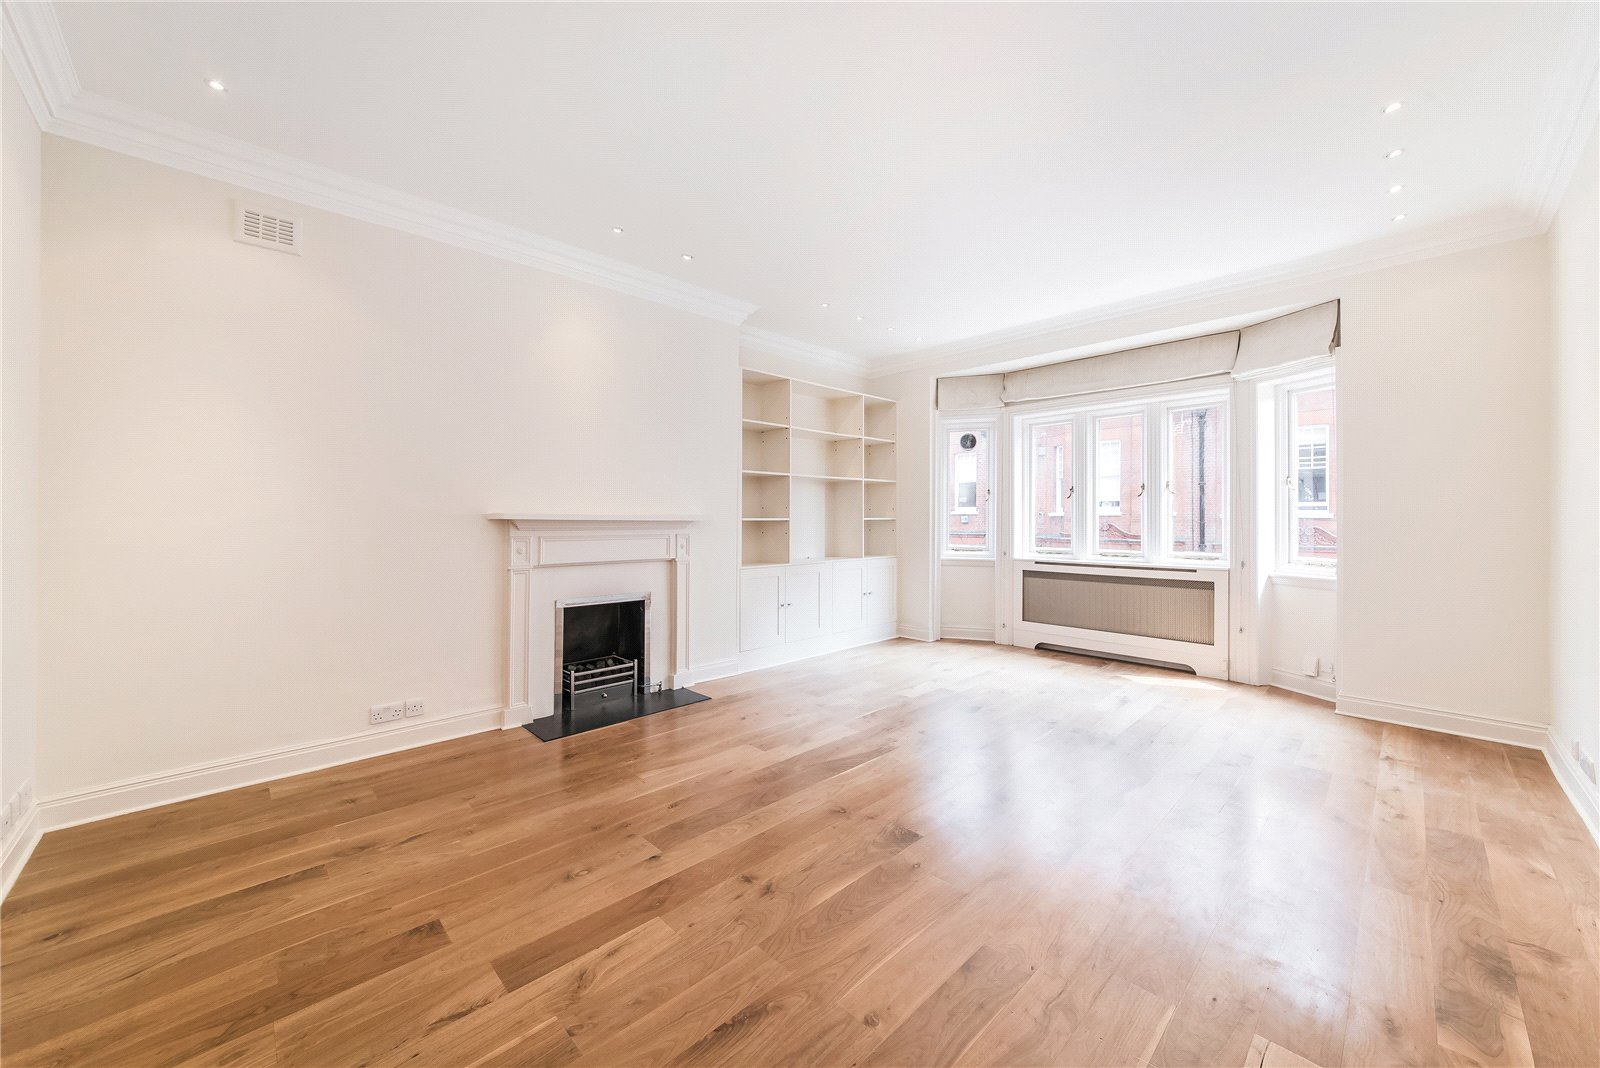 Apartment for Rent at Culford Gardens, Chelsea, London, SW3 Culford Gardens, Chelsea, London, SW3